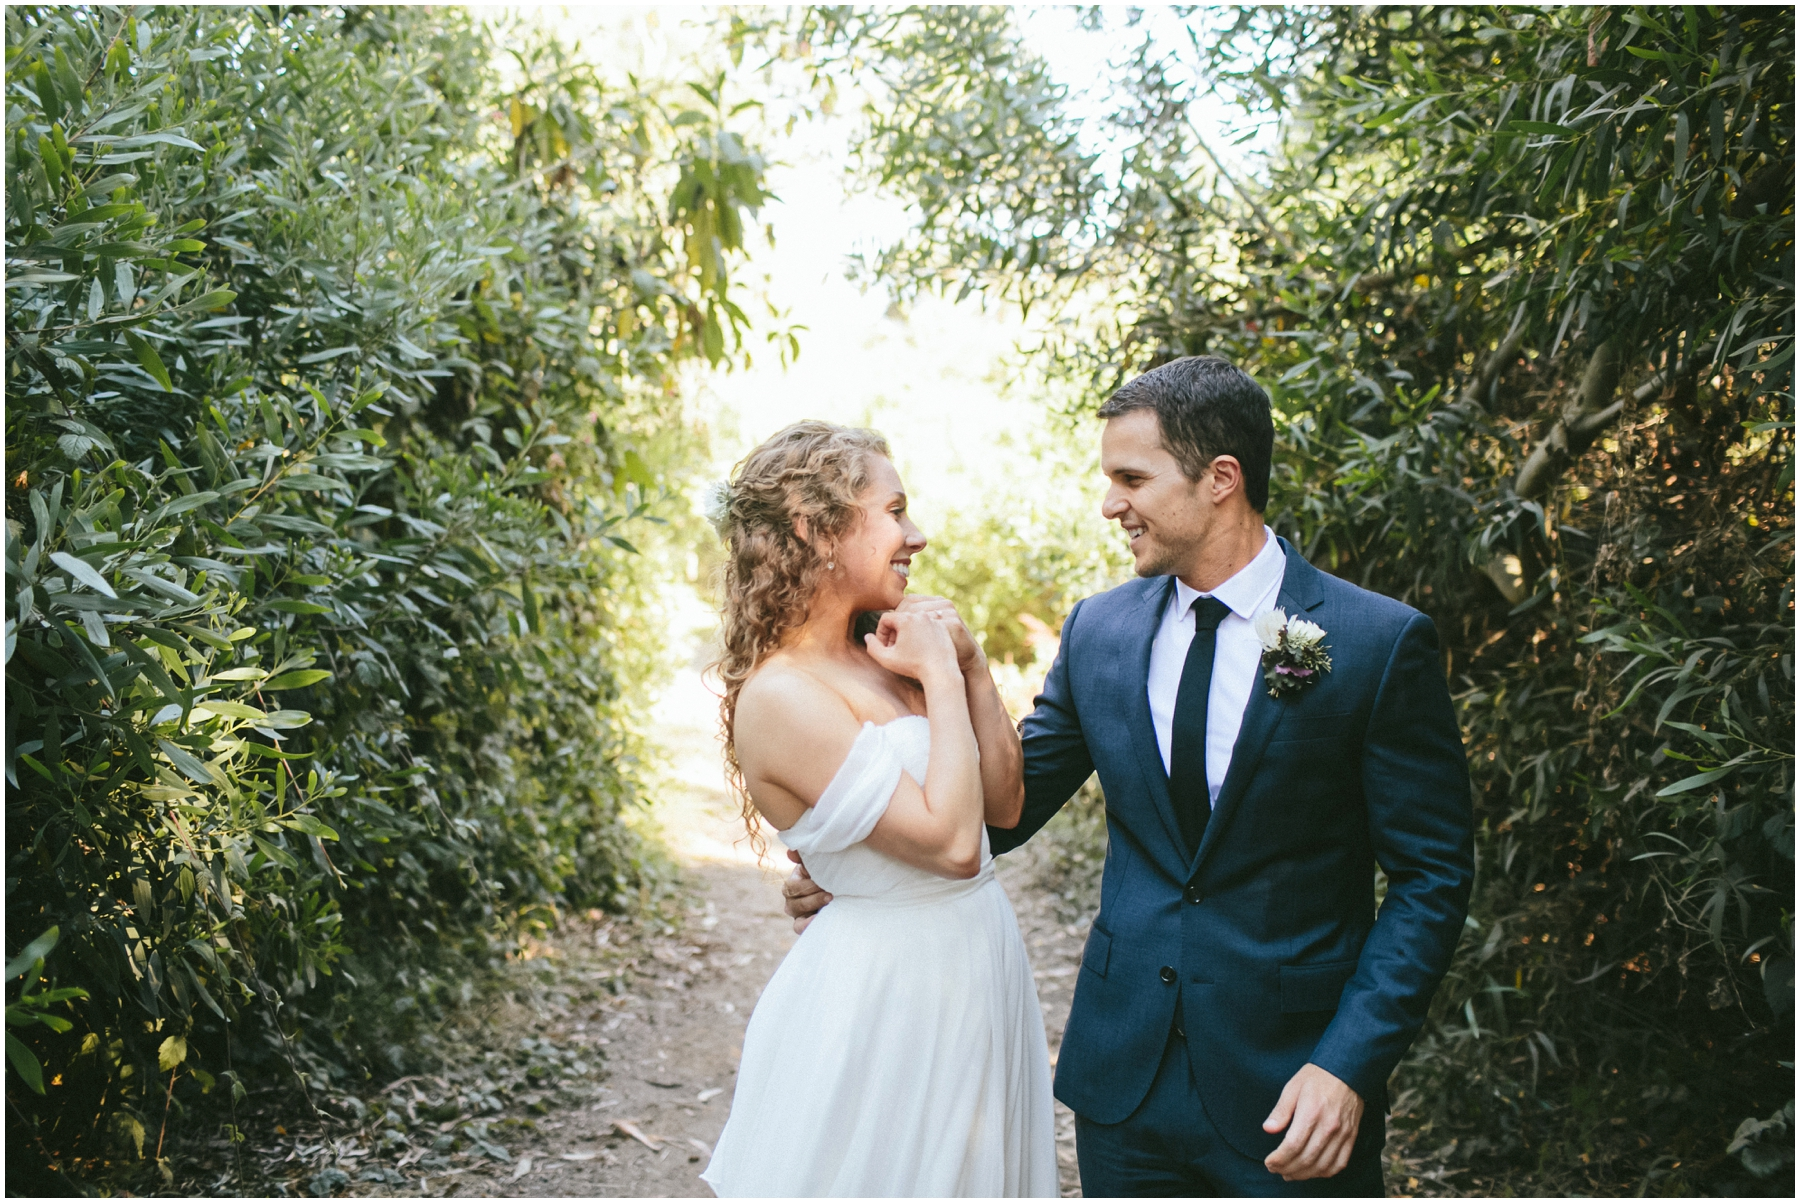 Emily+Paul-WEDDING_KellyBoitanoPhotography_0028